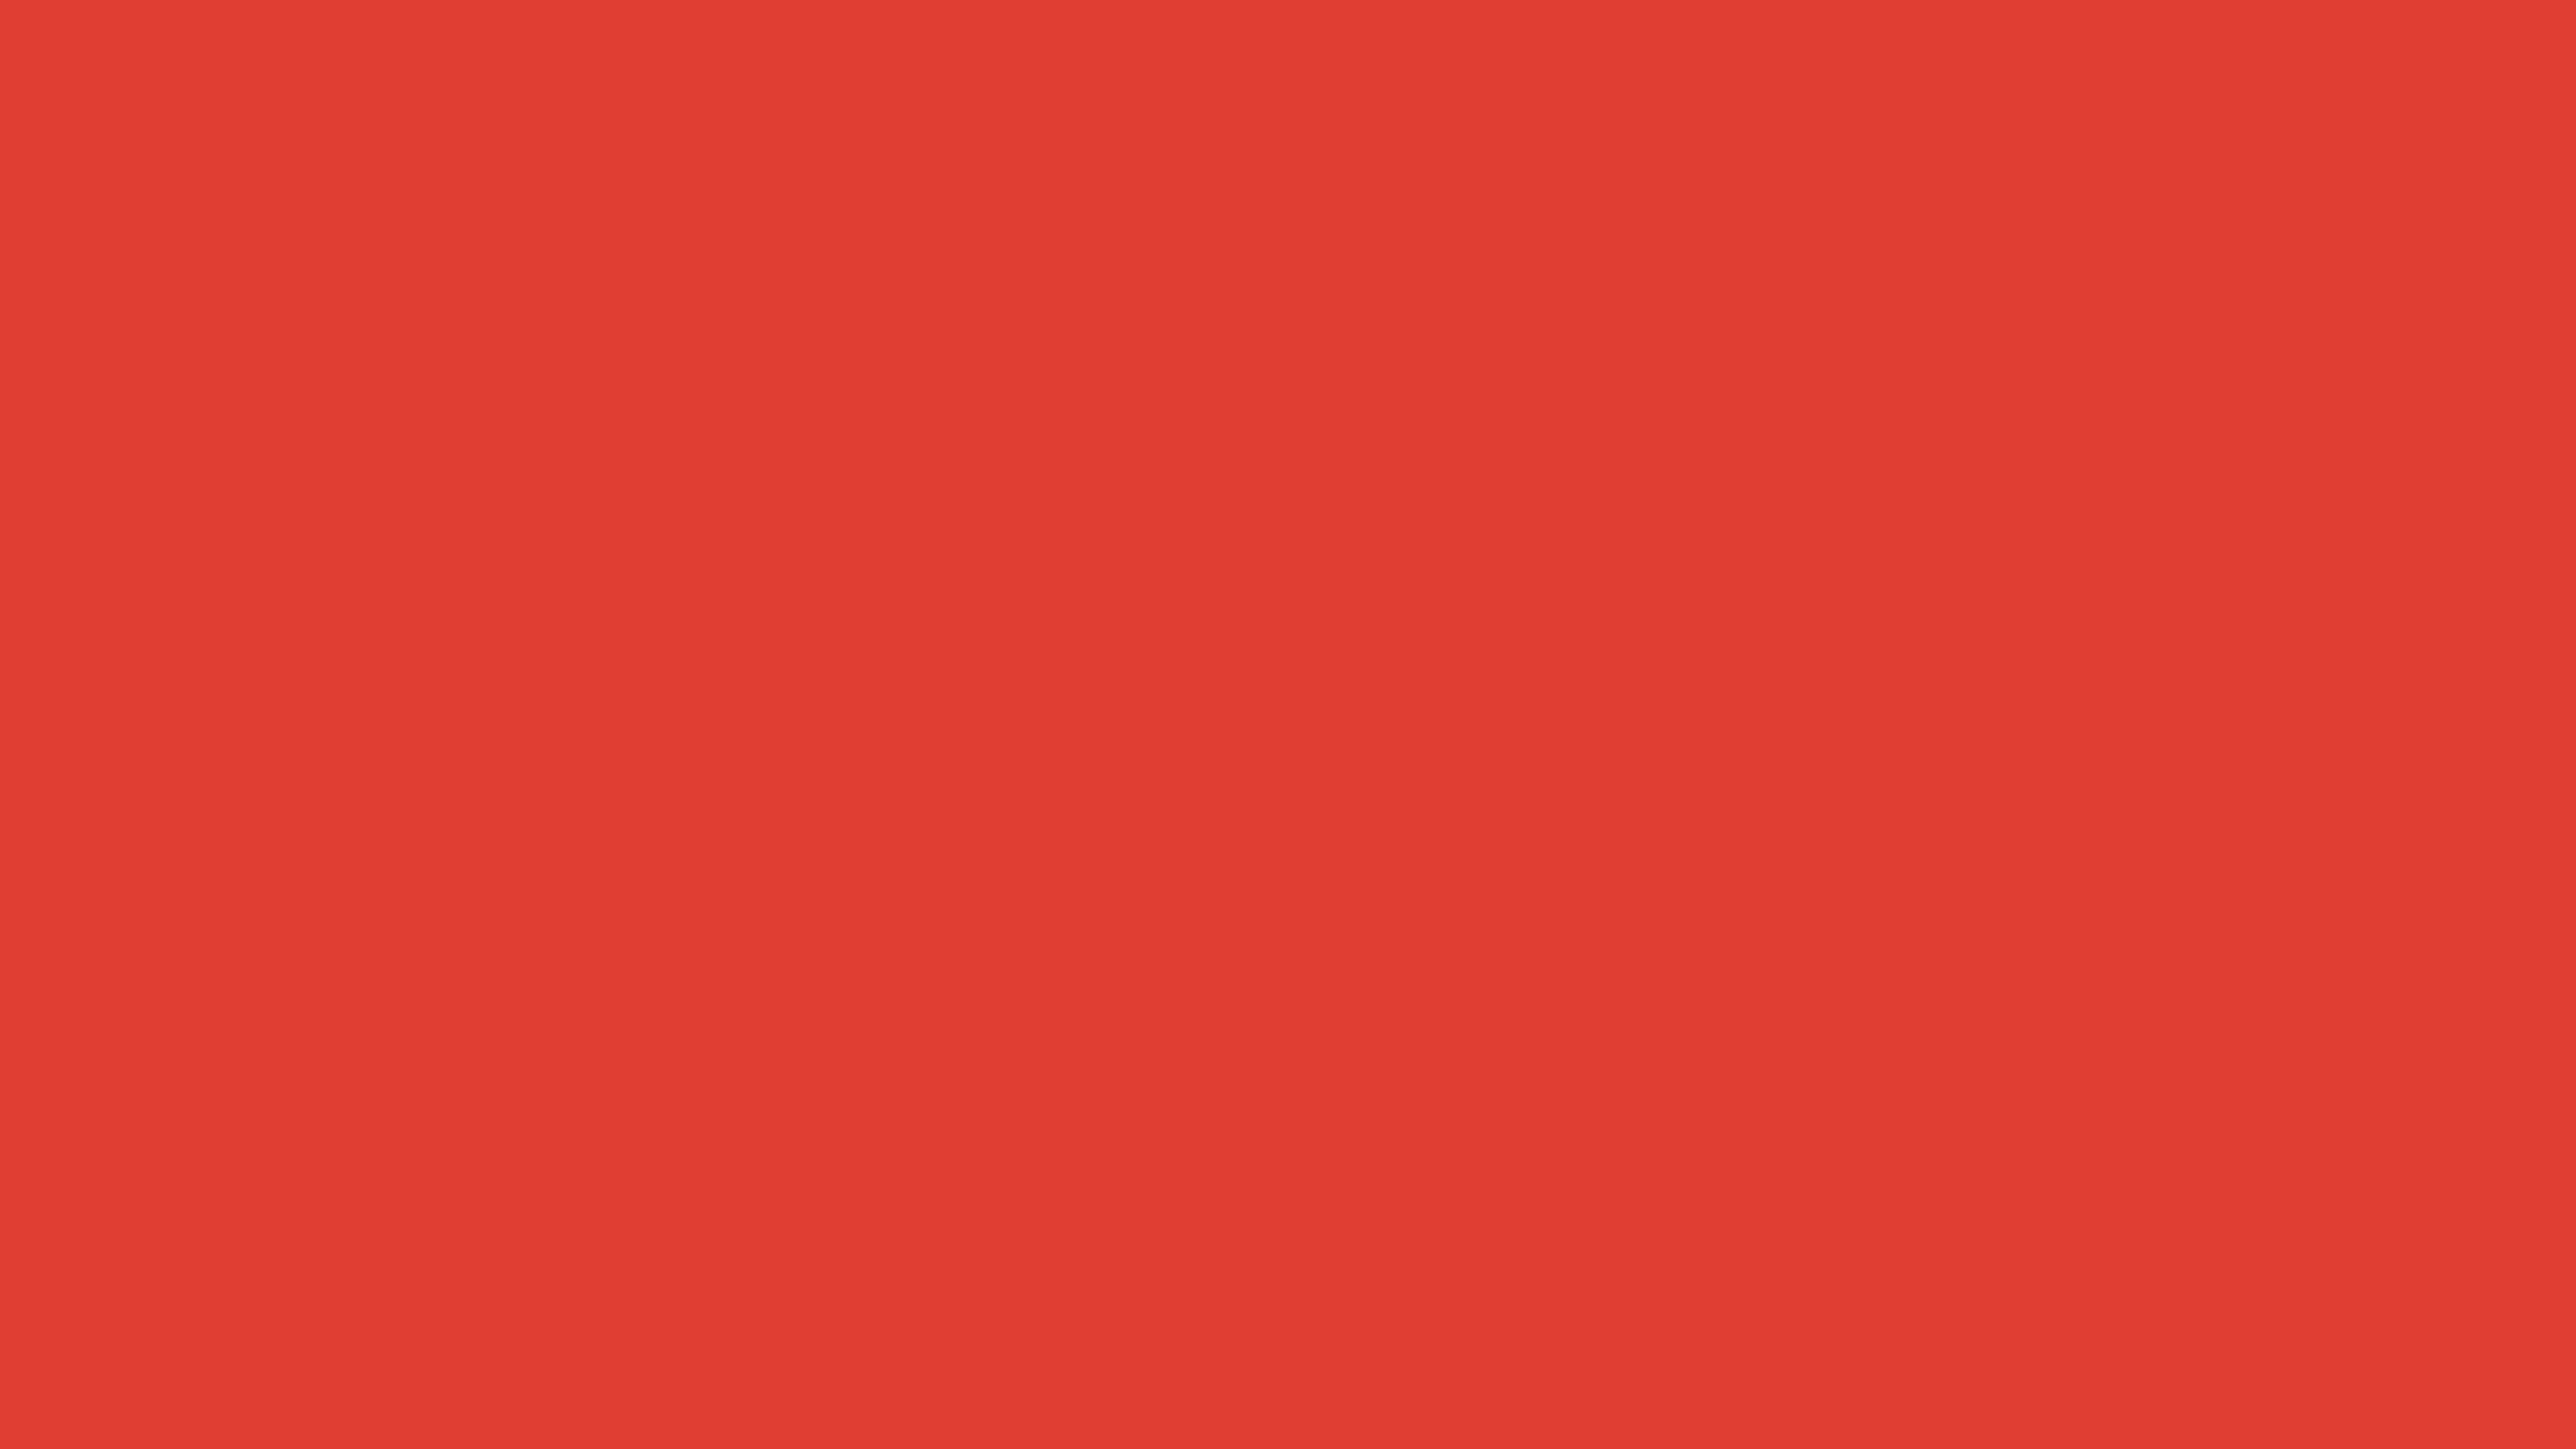 3840x2160 CG Red Solid Color Background